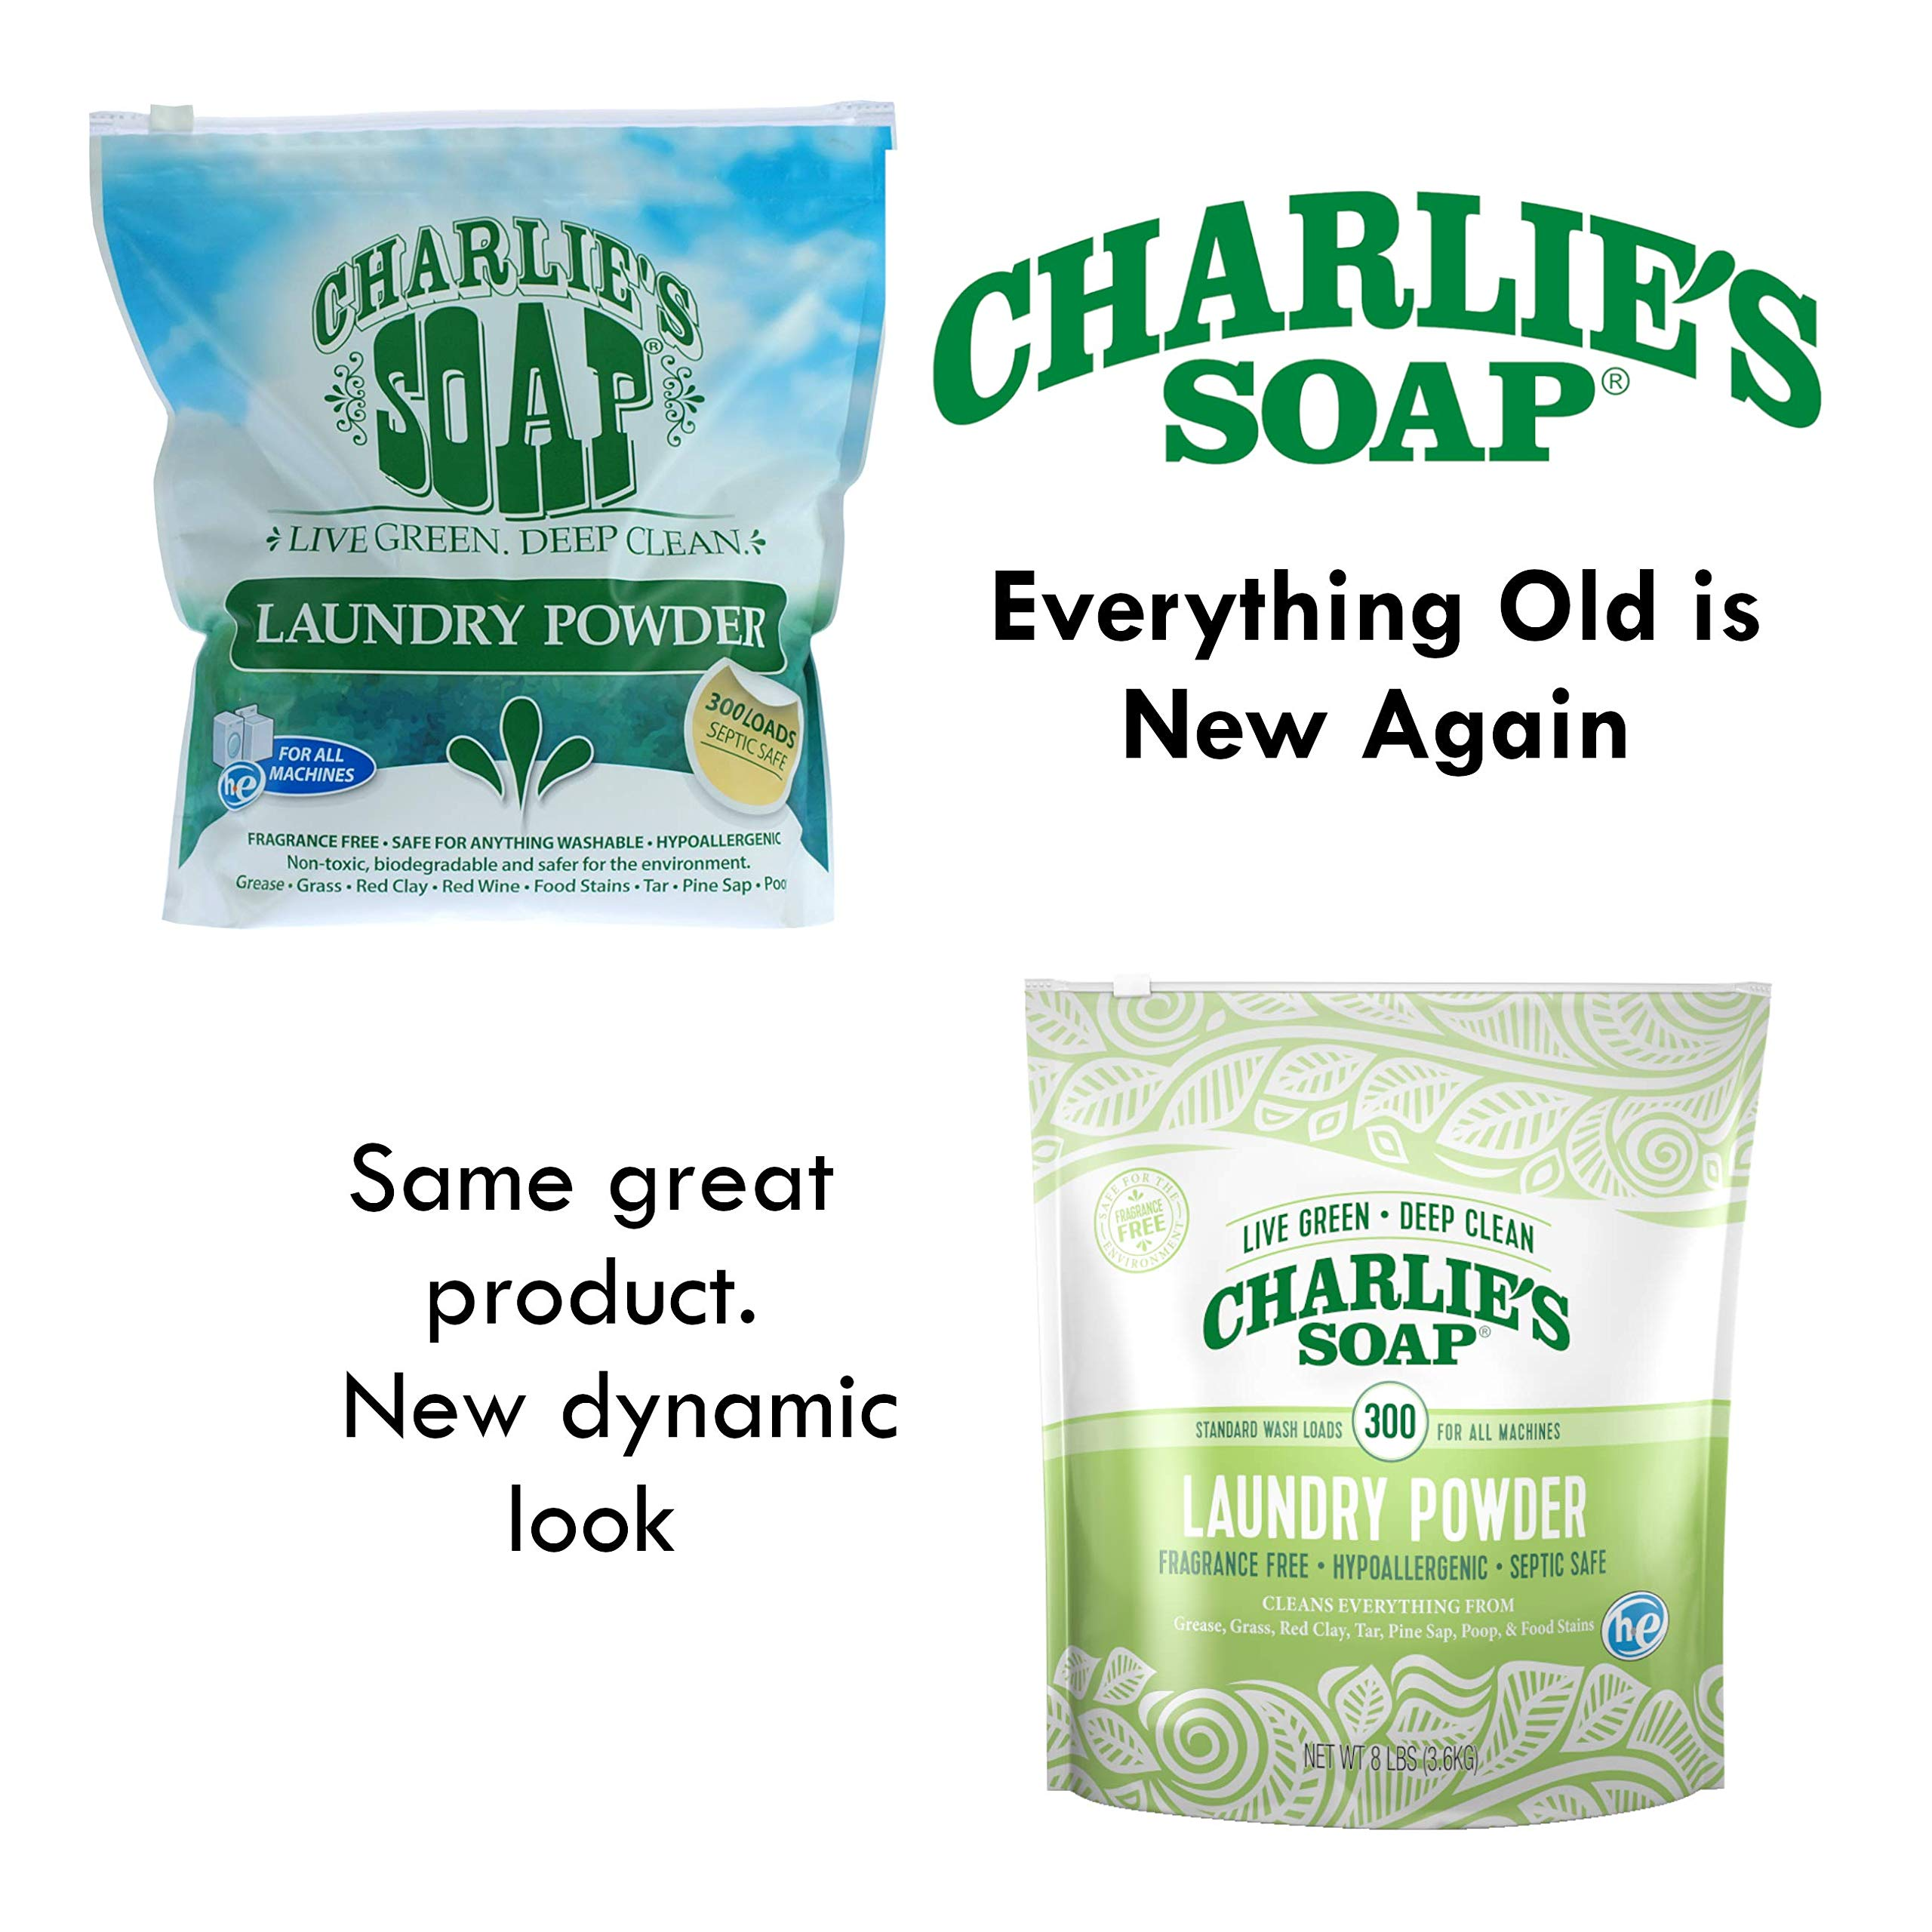 Charlie's Soap - Fragrance Free Powder Laundry Detergent - 300 Loads (8 lbs, 1 Pack) by Charlie's Soap (Image #2)